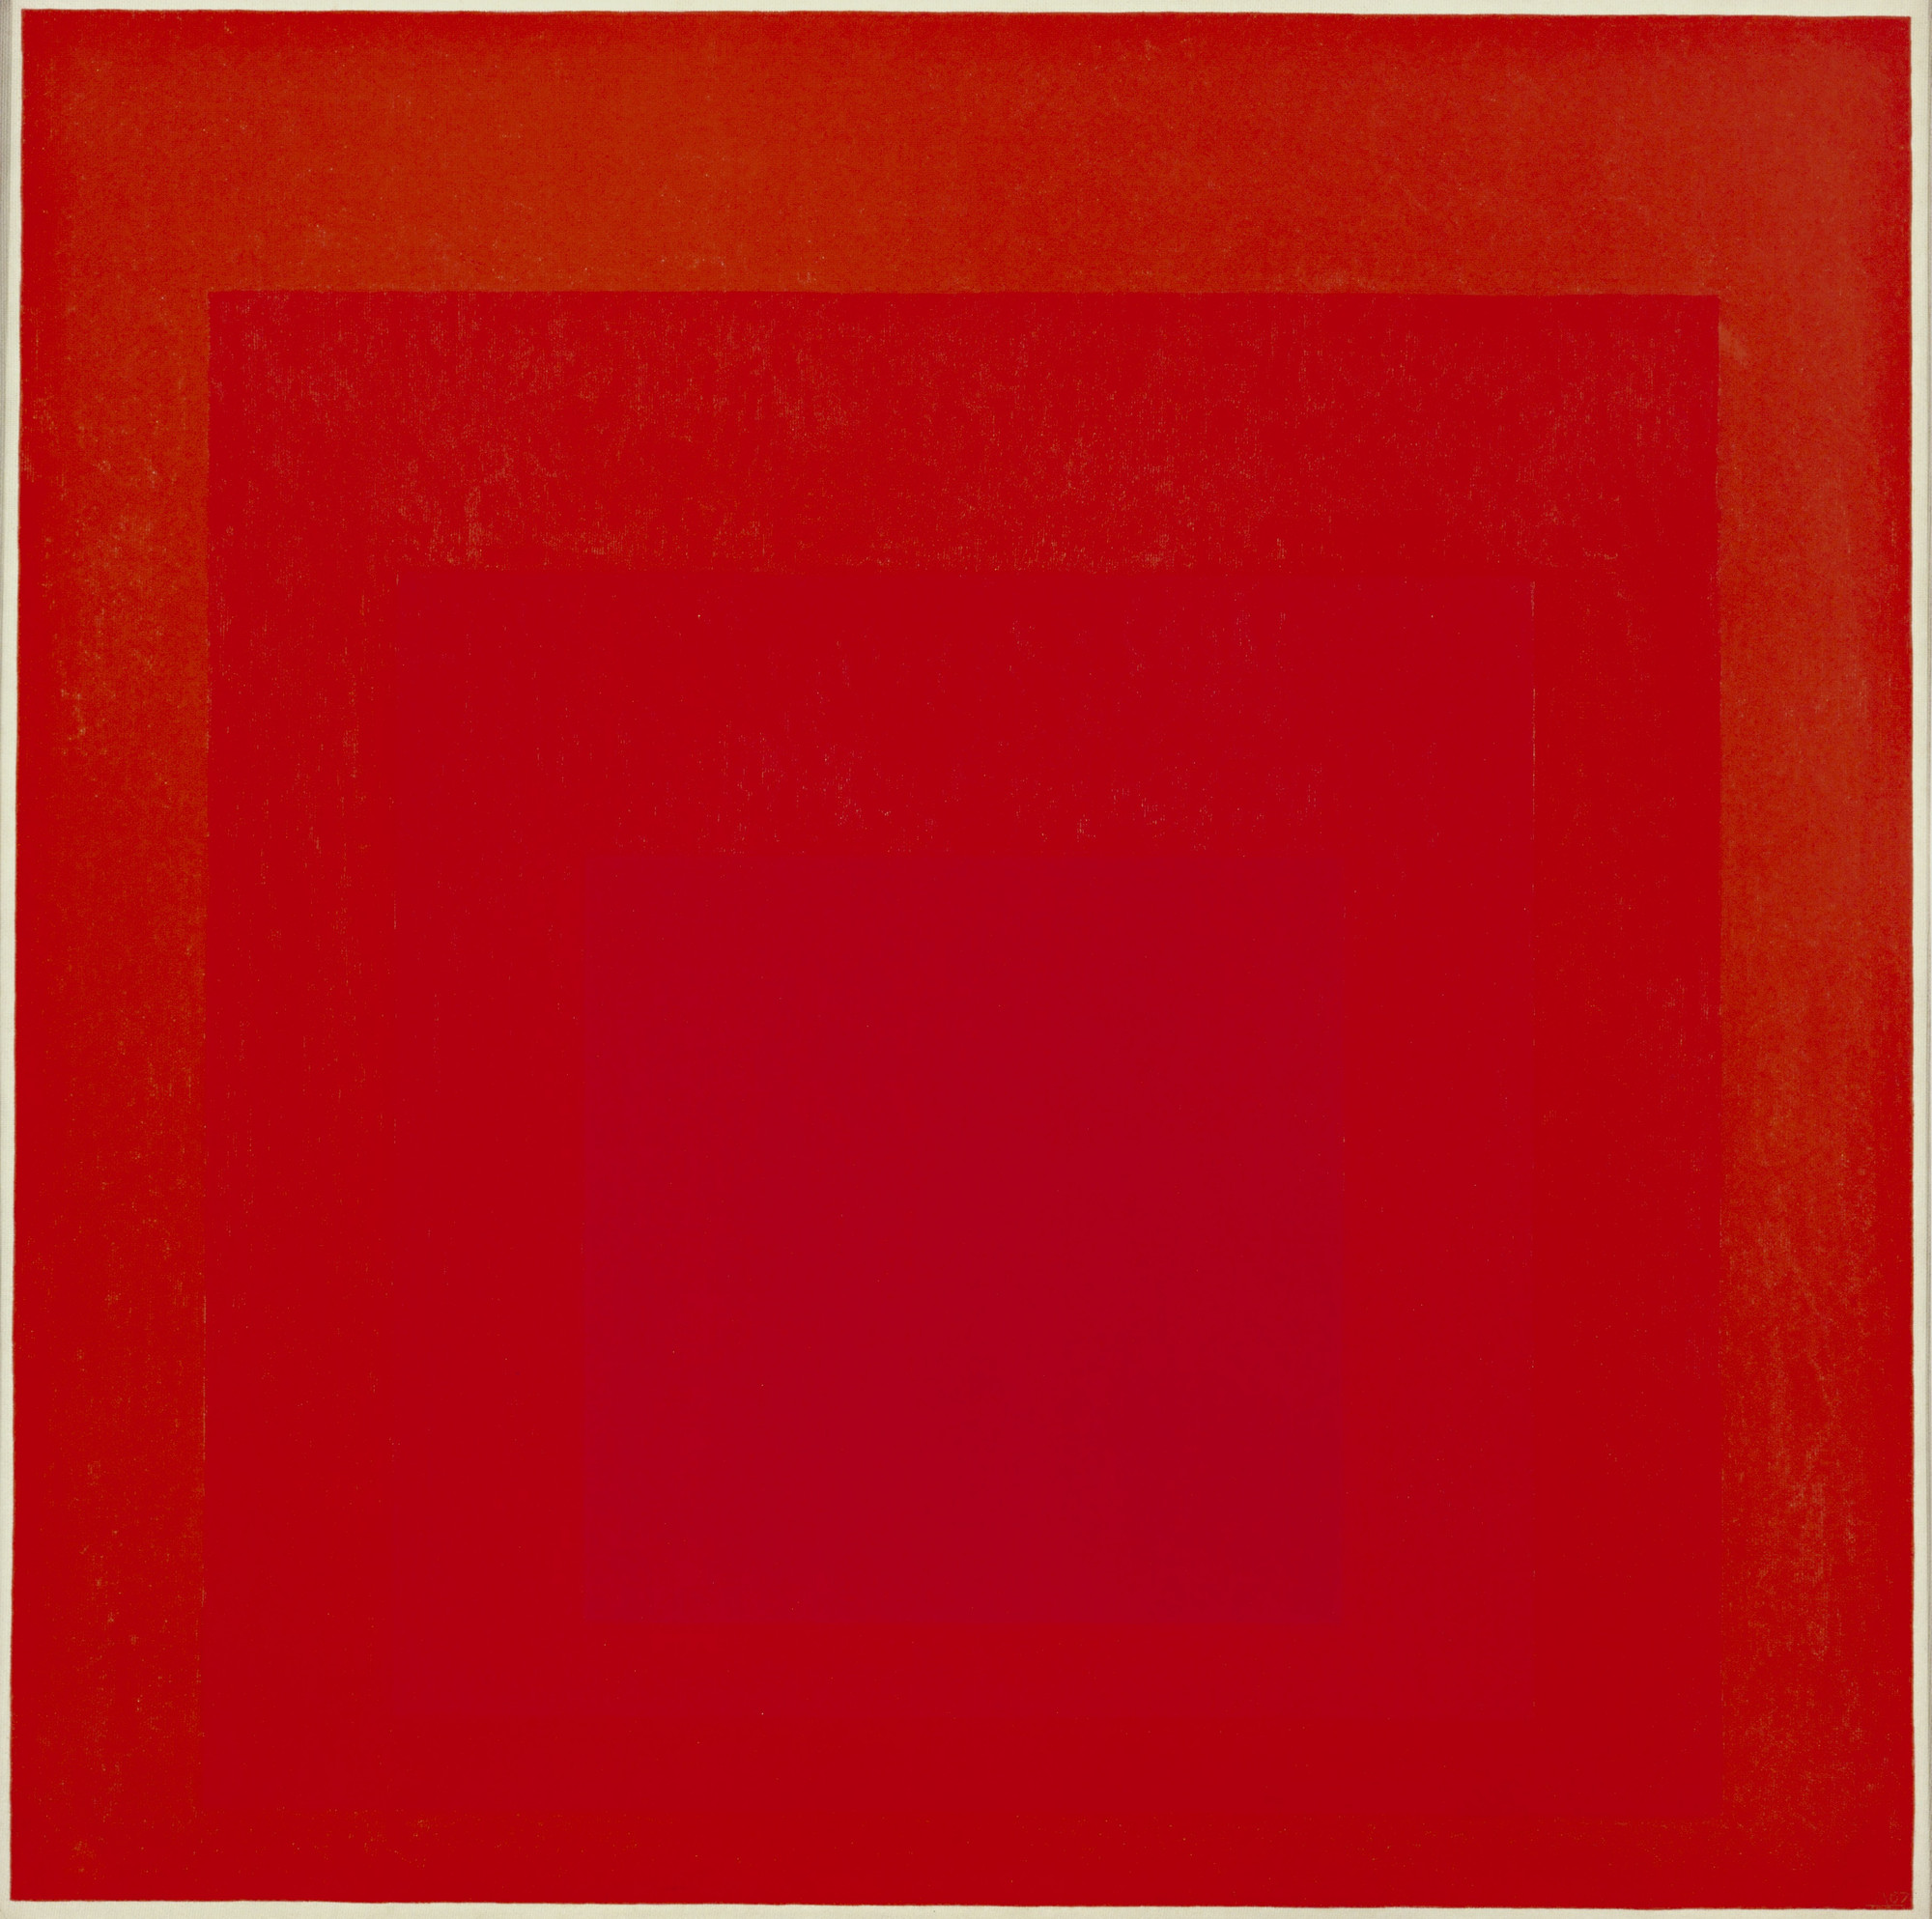 Josef Albers. Homage to the Square: Broad Call. fall 1967